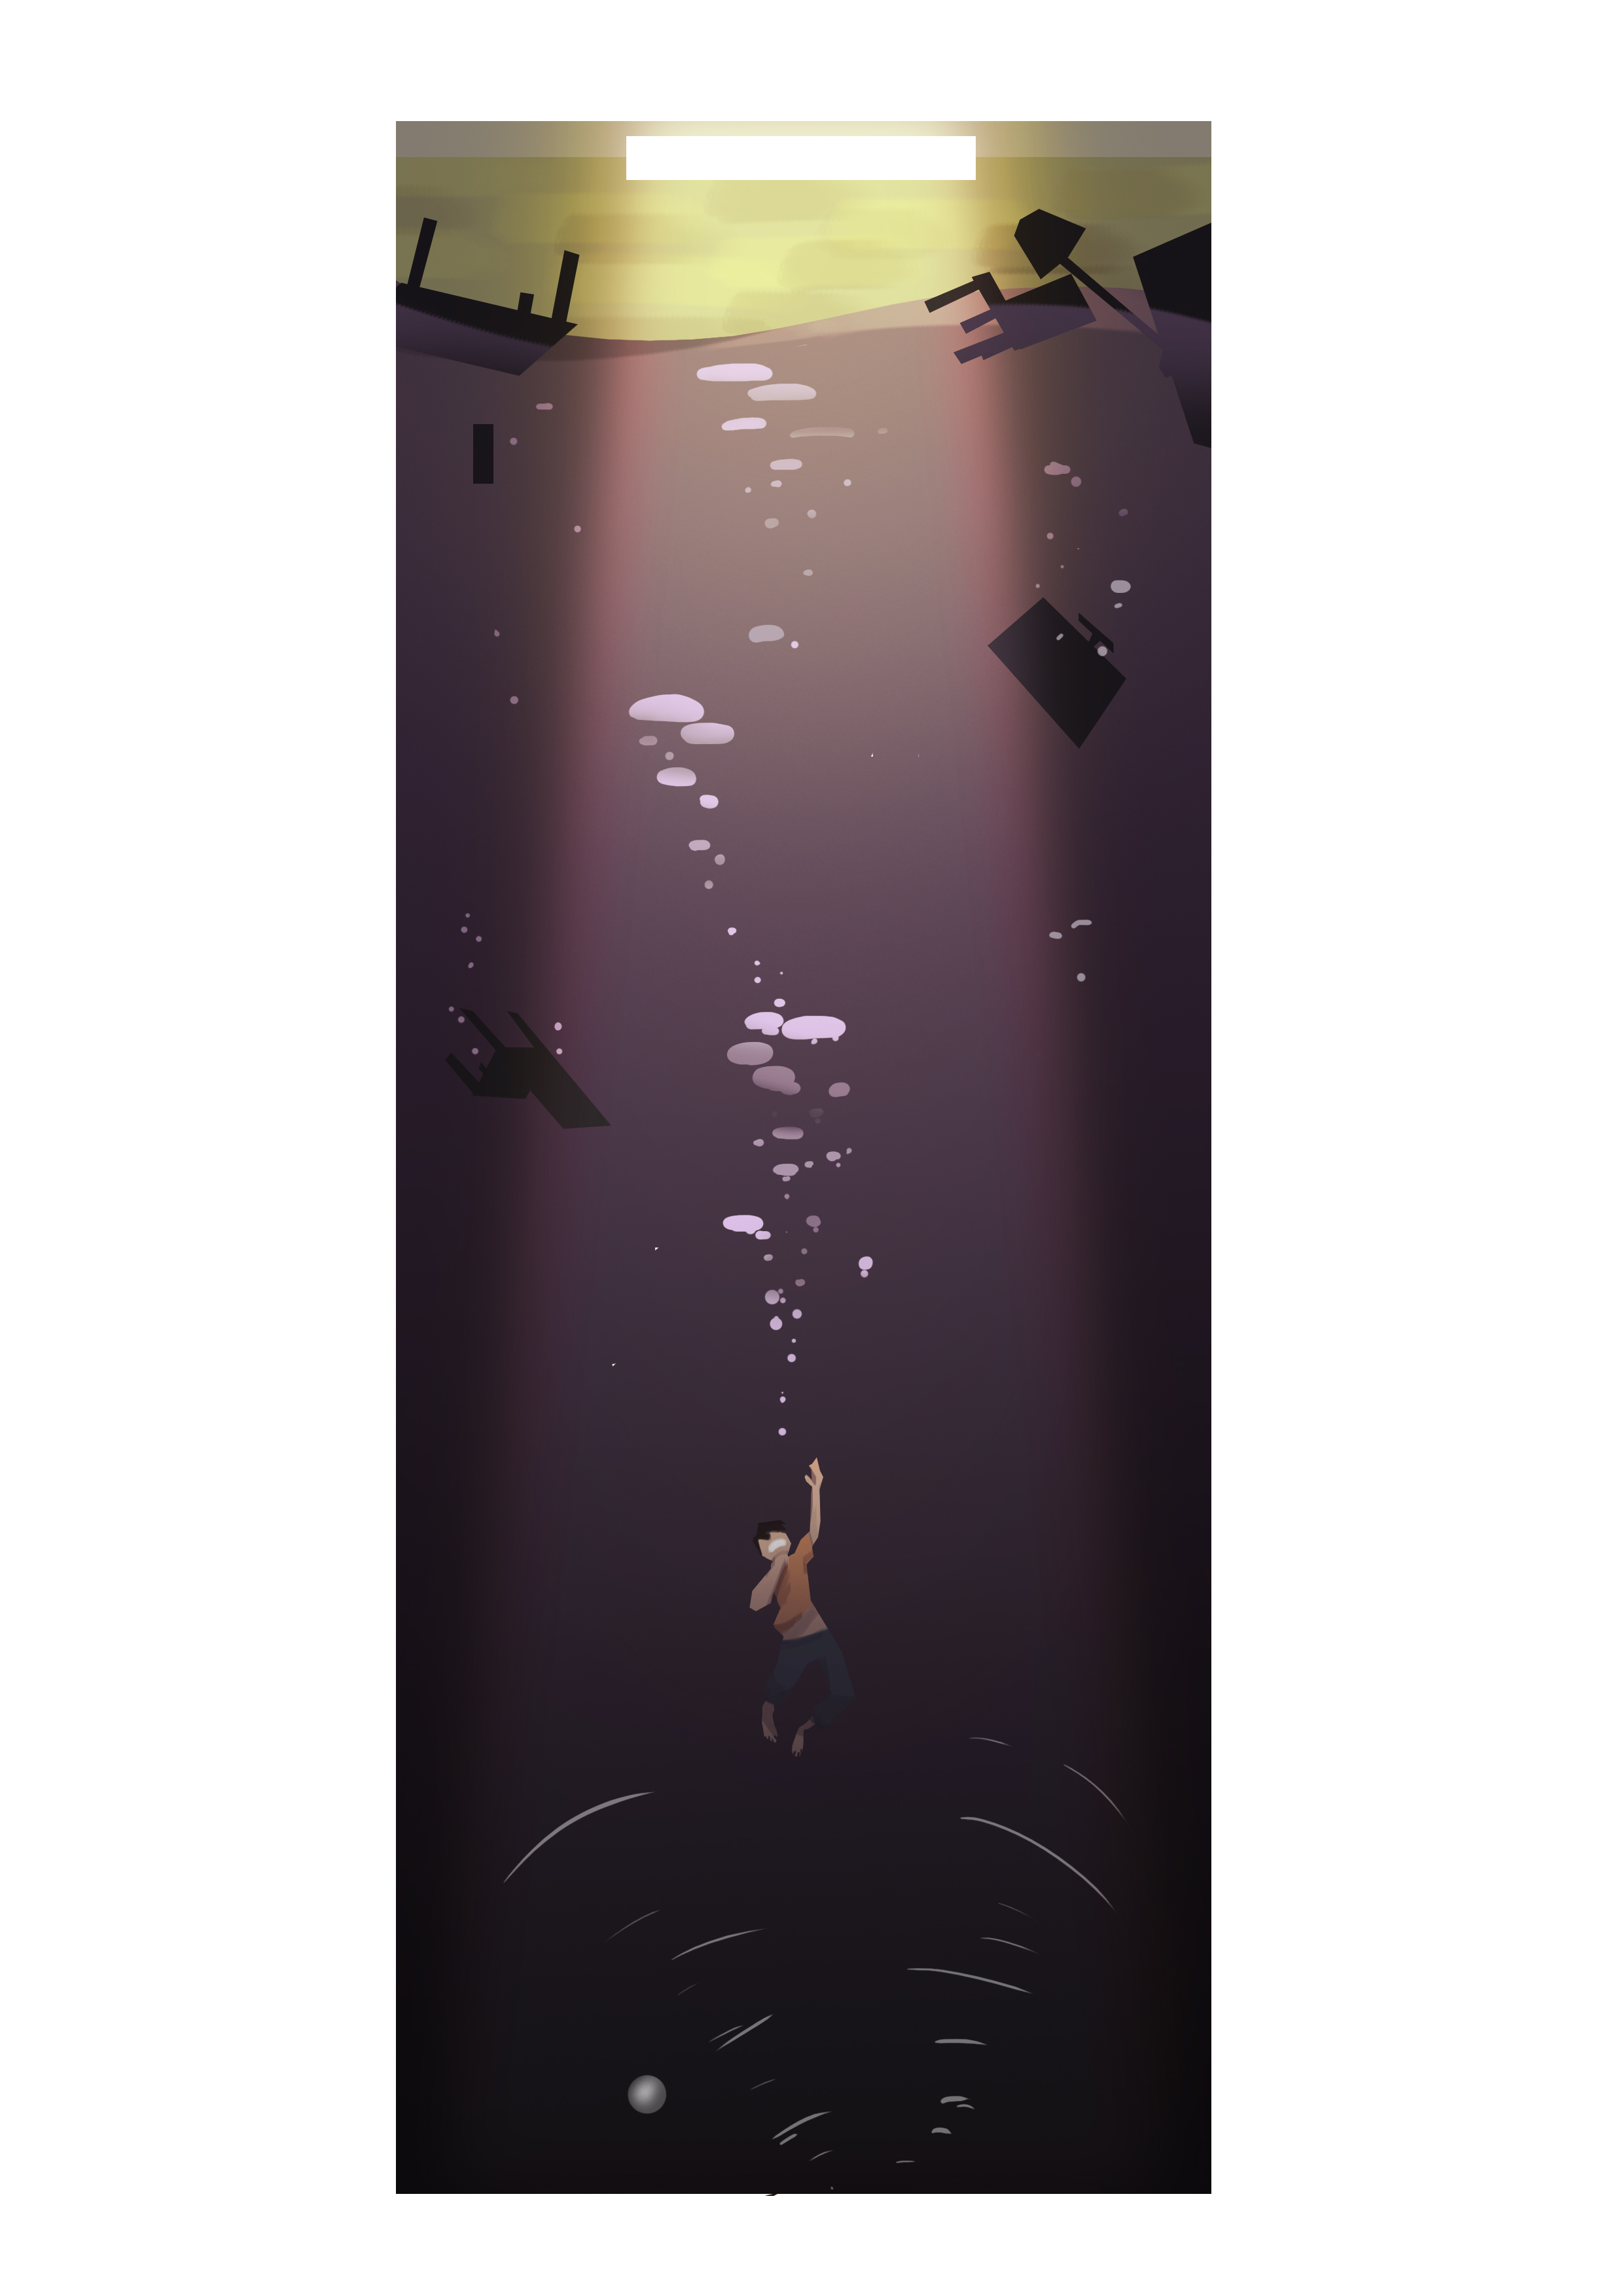 Assignment 1: Fear Thalassophobia – Clemens